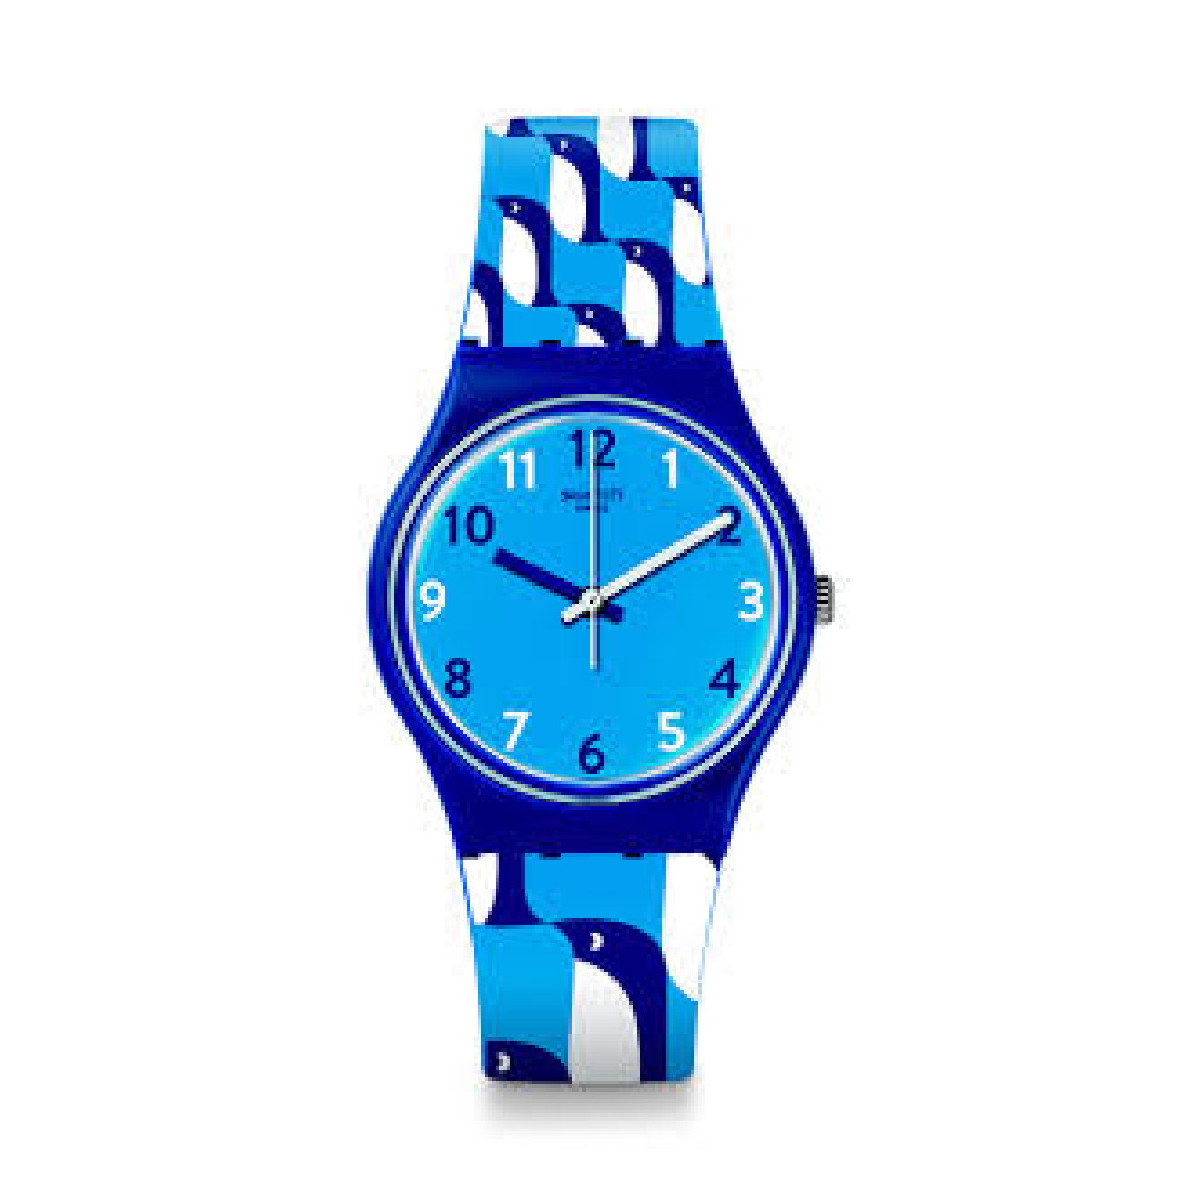 Swatch_GN246_Igino_outlet_50%